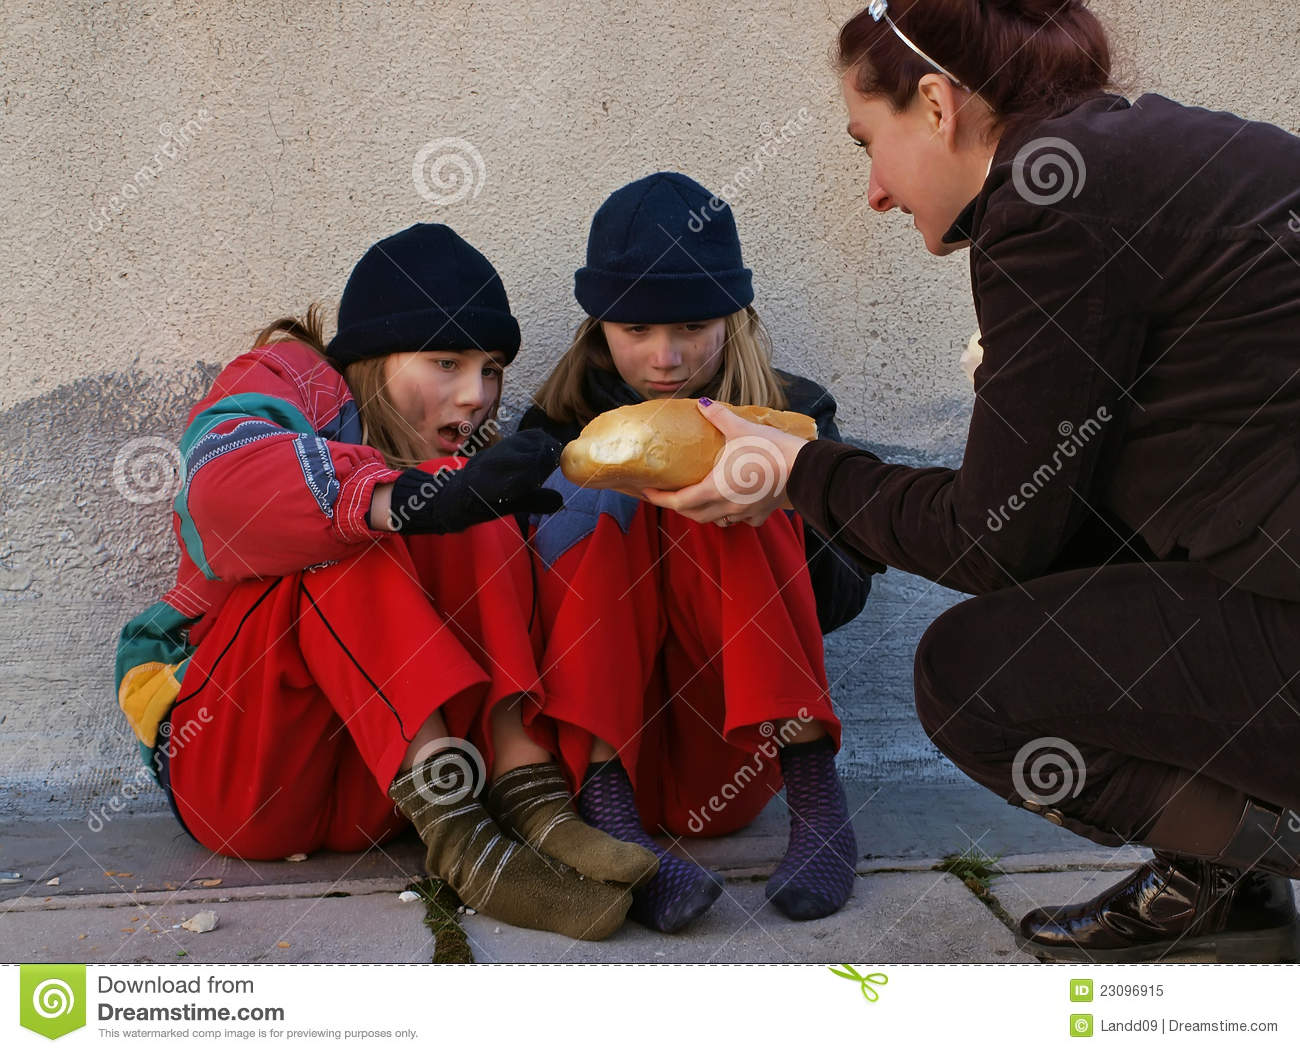 helping poor children You can also carry forward this initiative and can collect clothes and other old  items from your neighbors, office, school, etc and can donate among poor  children.